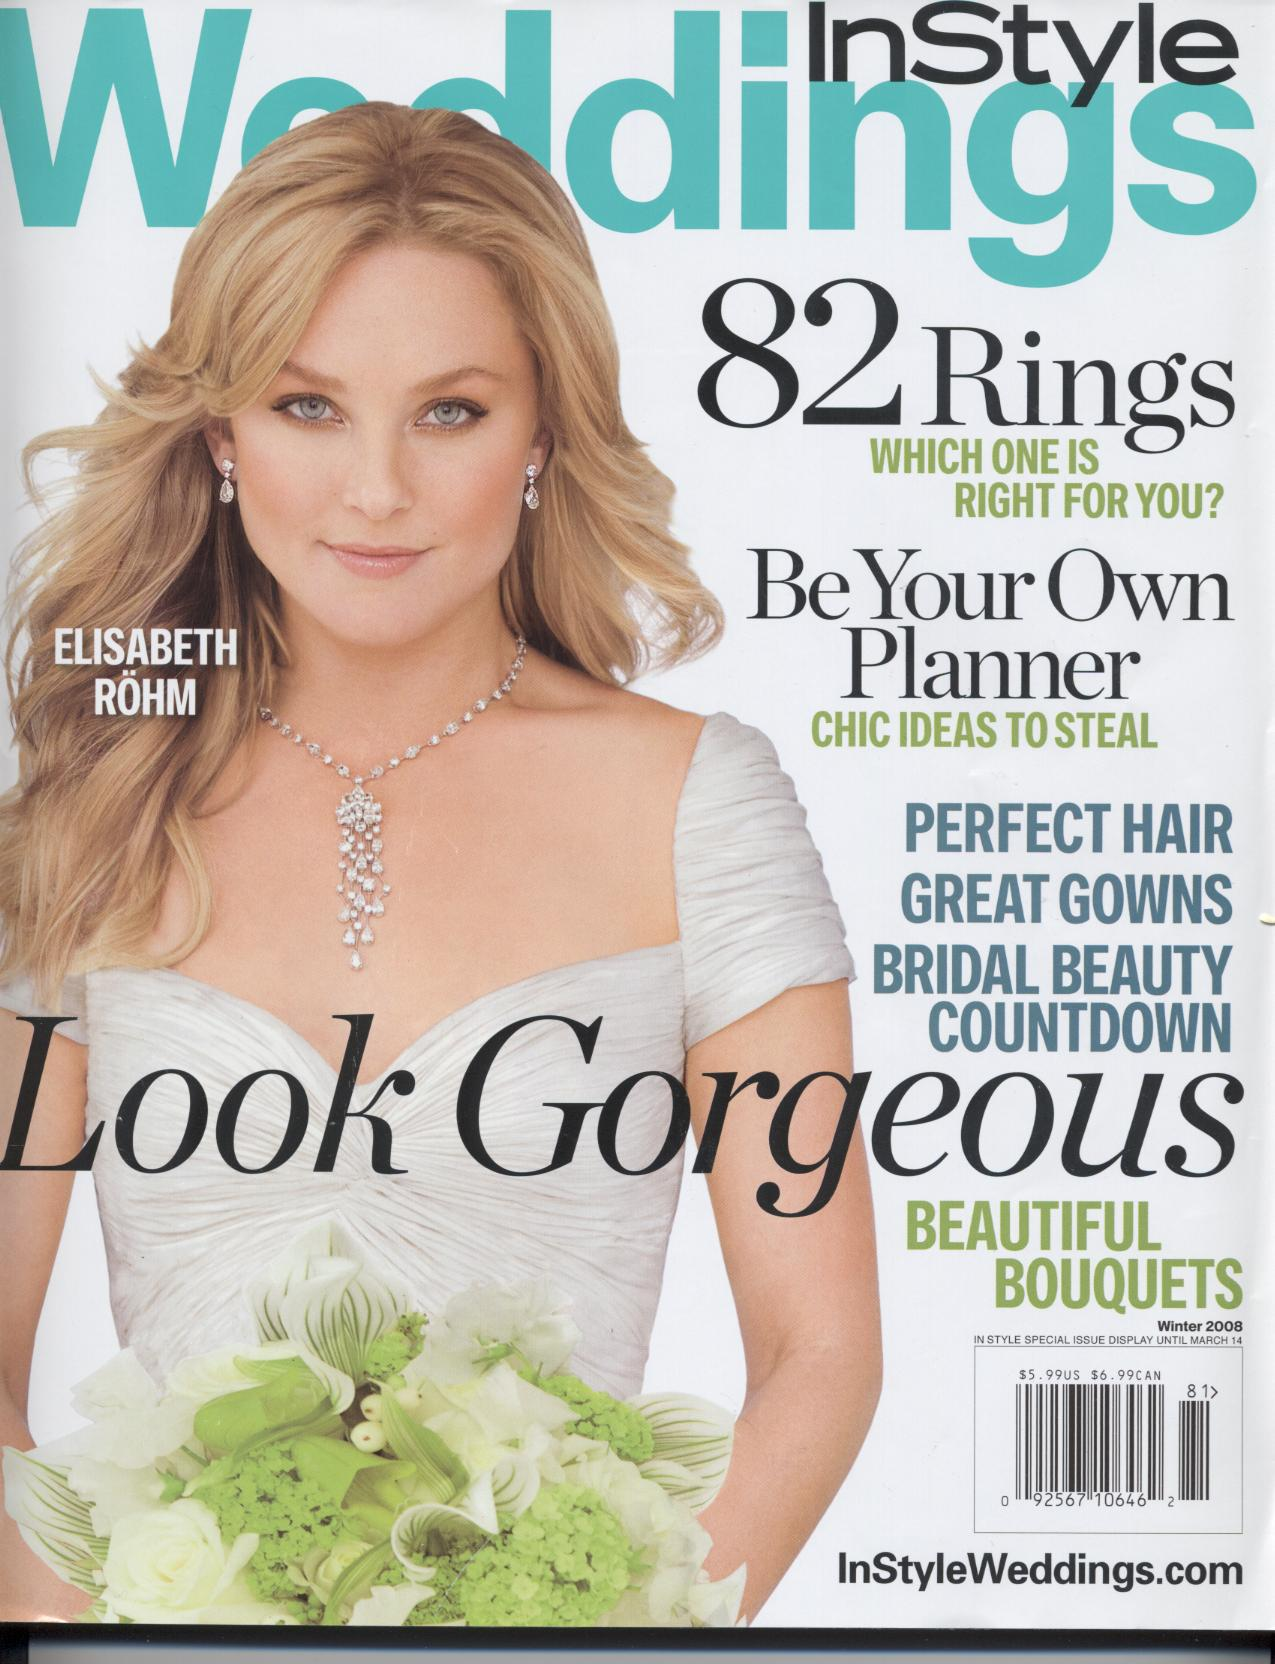 instyle weddings the number one wedding magazine is closing the last ...